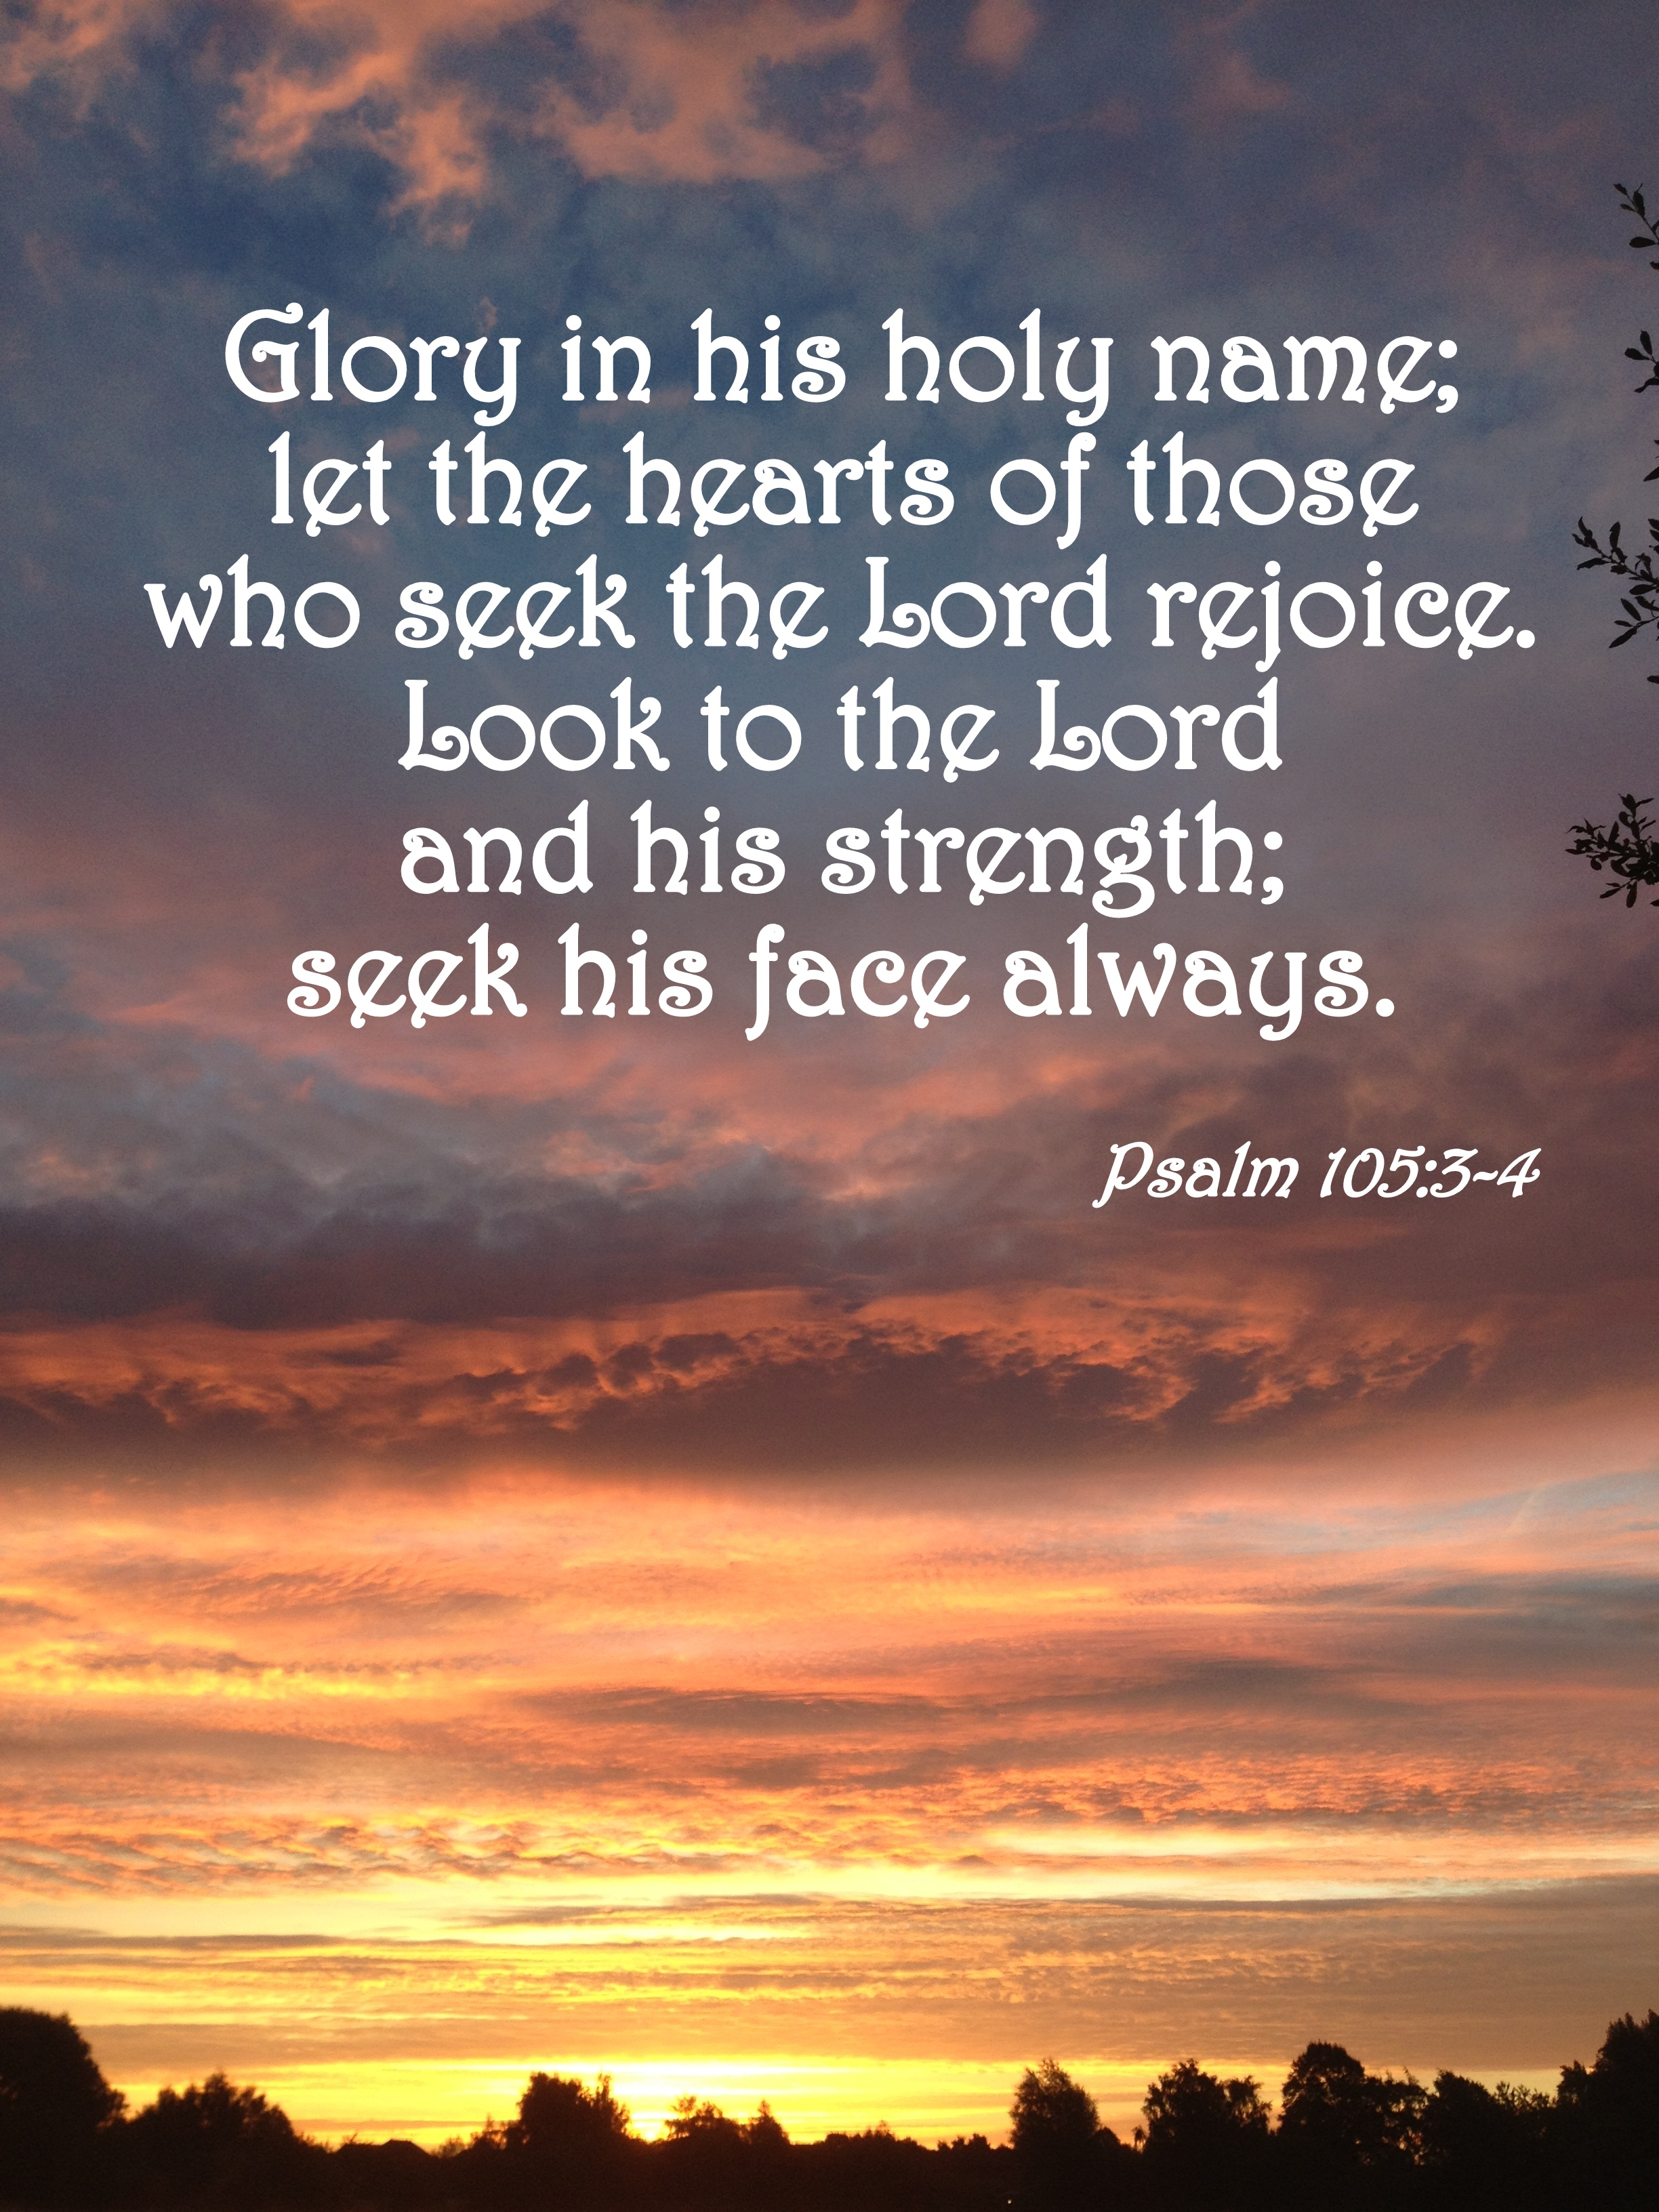 bible 105 4 4search for the lord and his might seek his presence constantly דדִּרְשׁ֣וּ  יְהֹוָ֣ה וְעֻזּ֑וֹ בַּקְּשׁ֖וּ פָנָ֣יו תָּמִֽיד: 5remember his wonders, which he.